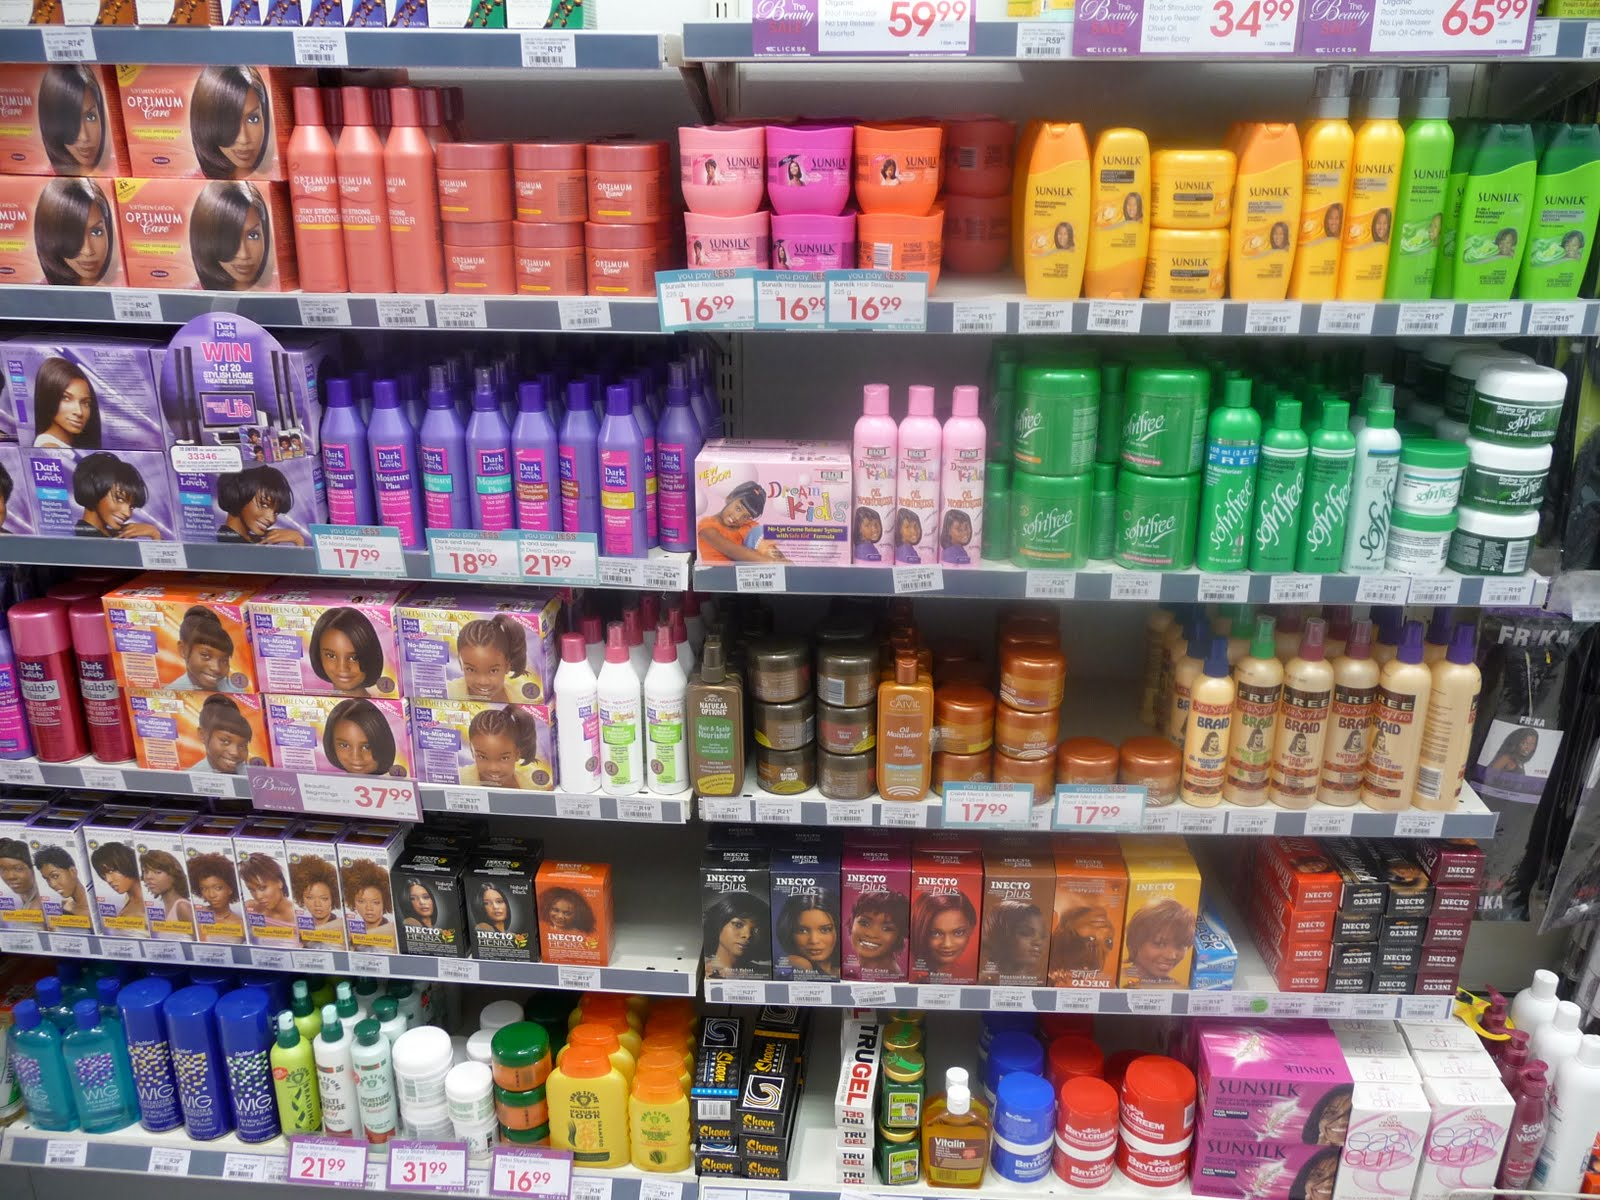 http://4.bp.blogspot.com/_TRc6VgXs31c/TGrtuTeW6WI/AAAAAAAAABI/ZX82c25Qdgw/s1600/black-hair-care-products-at-a-local-variety-store-in-rosebank-mall.jpg